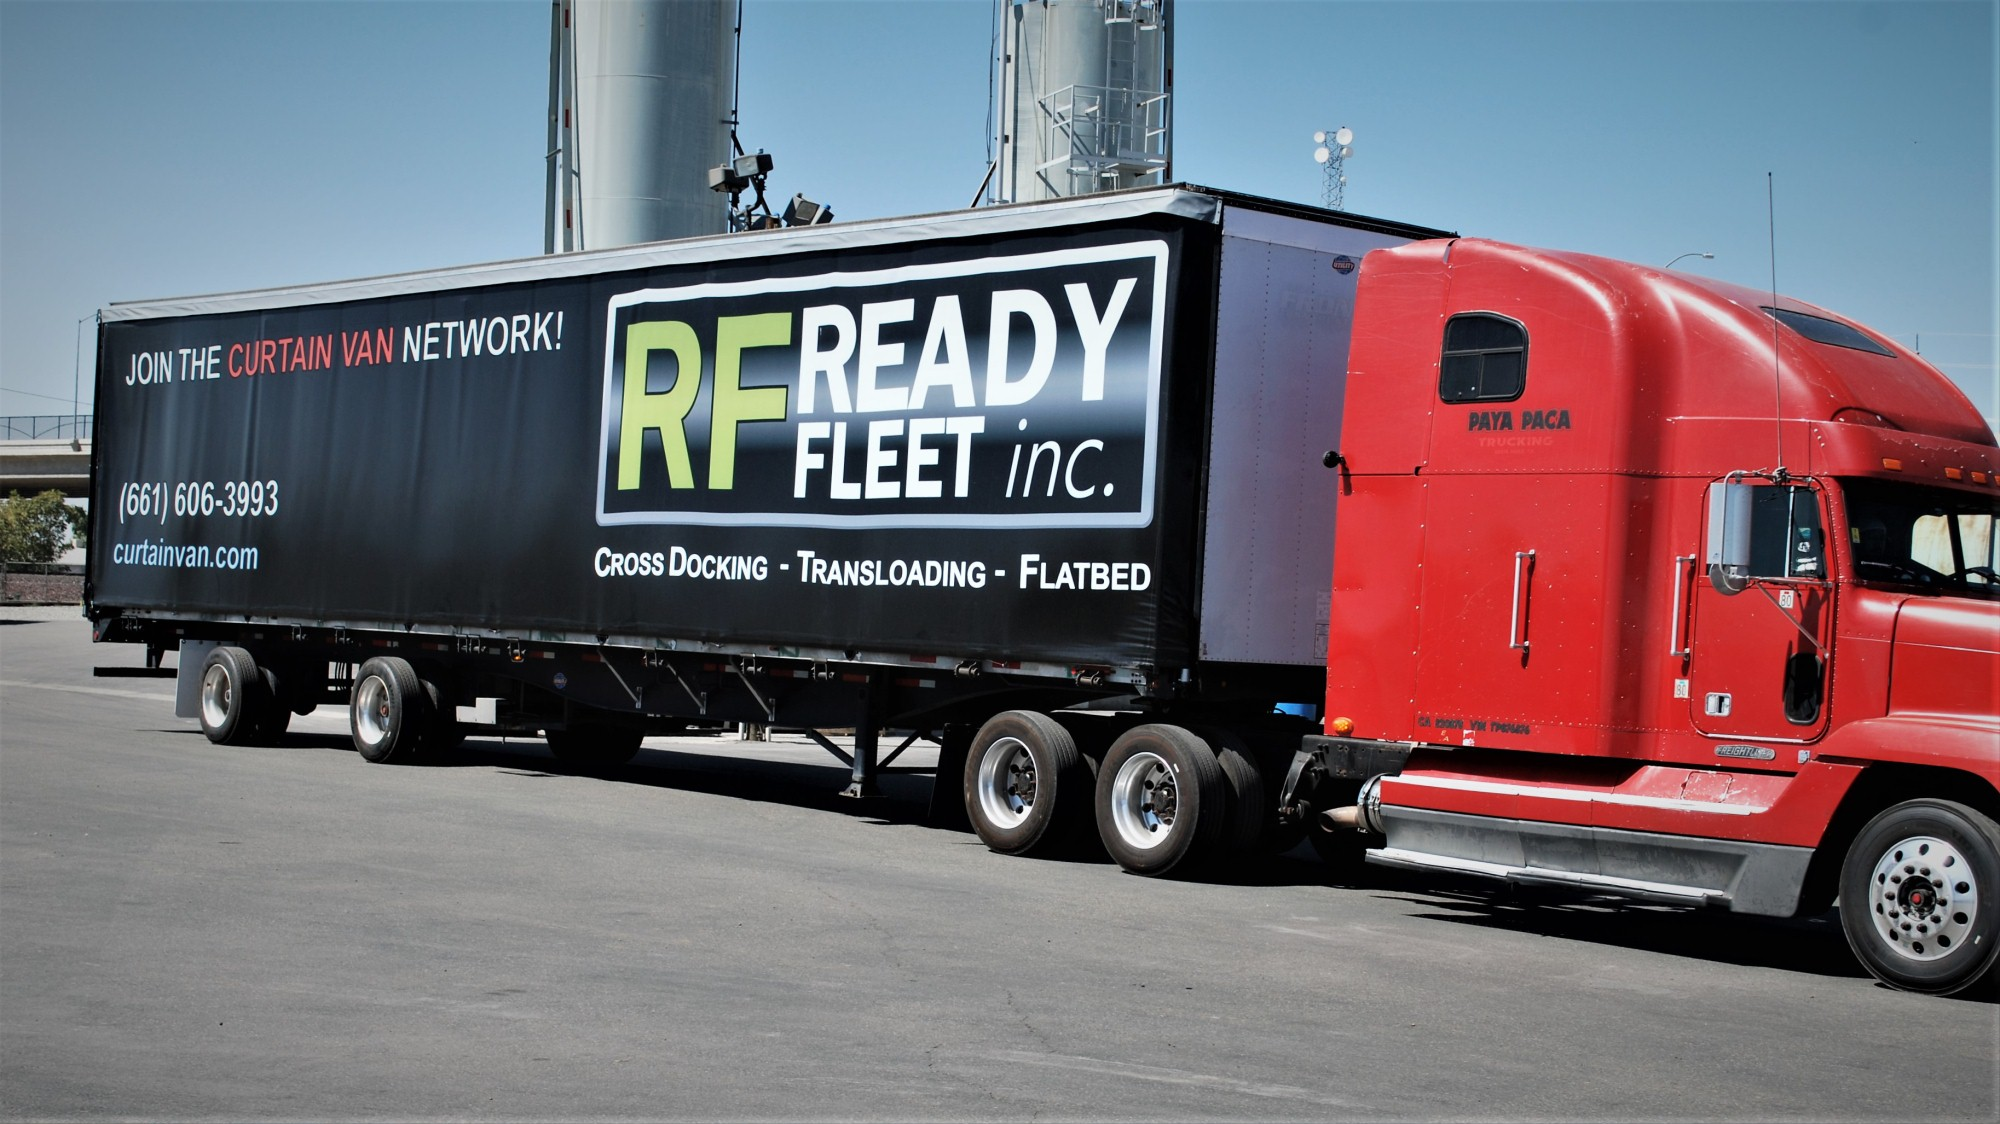 Amazing Curtain Van Trailer Fresno Ready Fleet